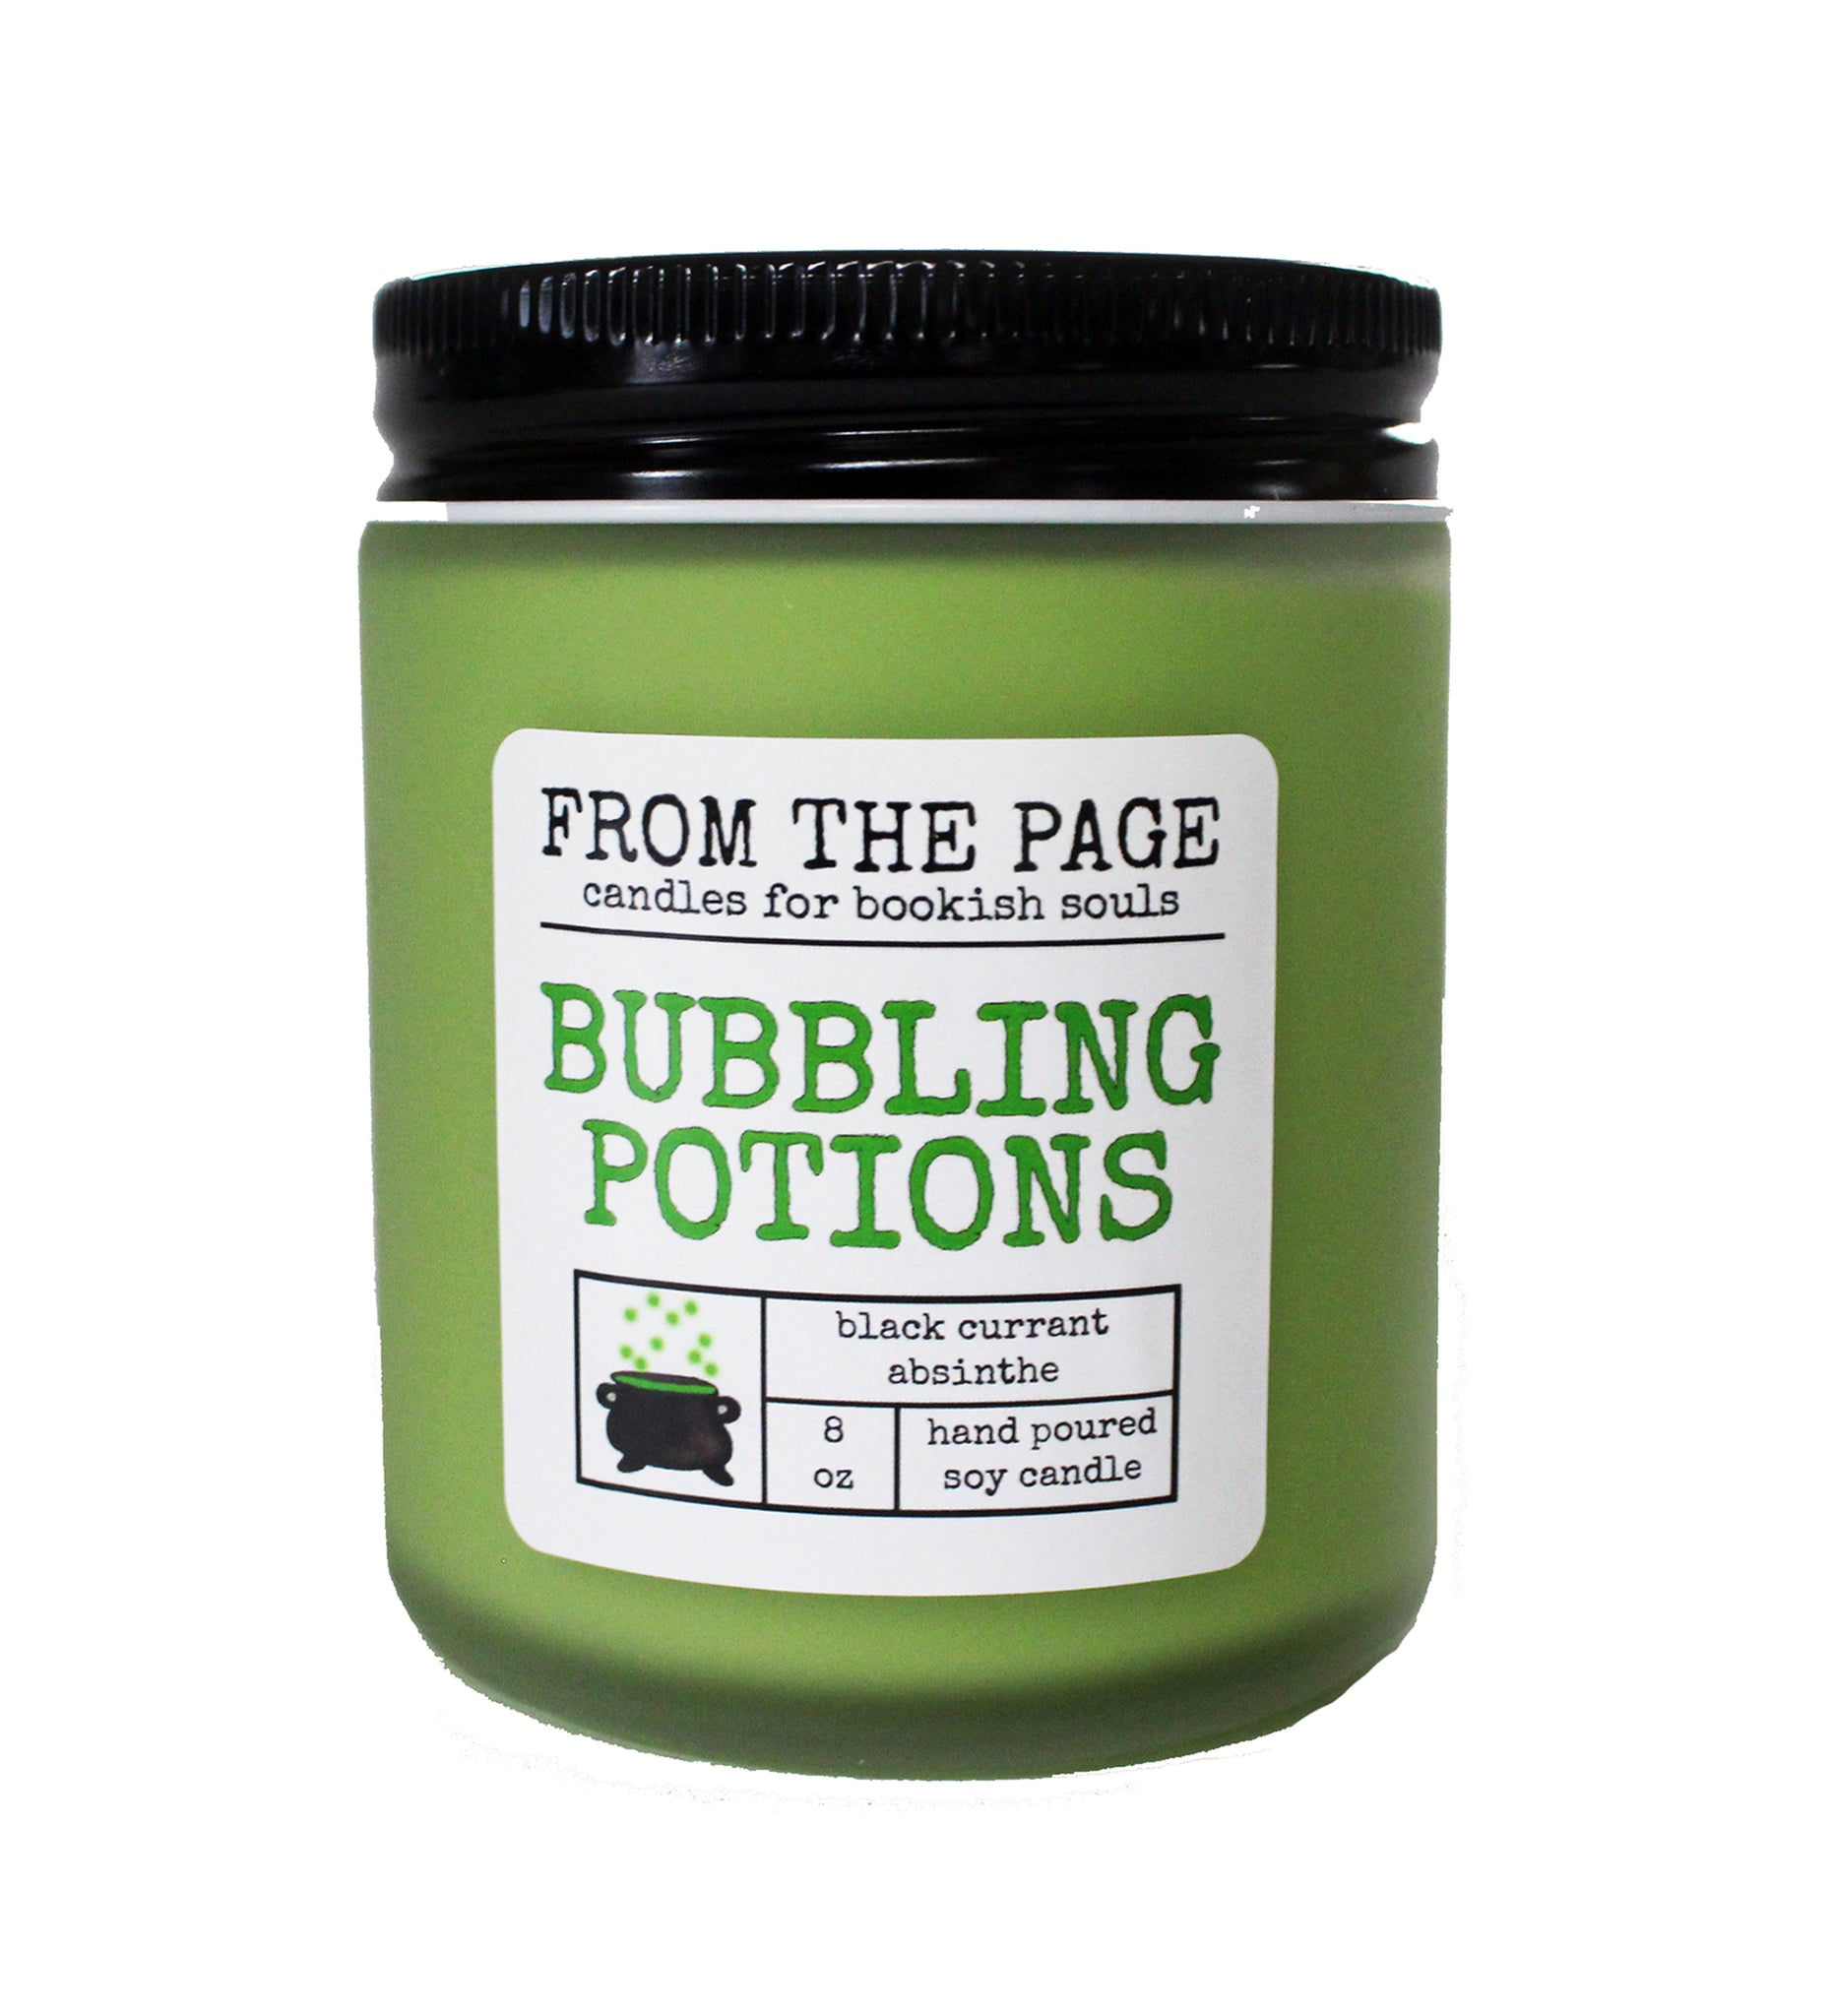 Bubbling Potions